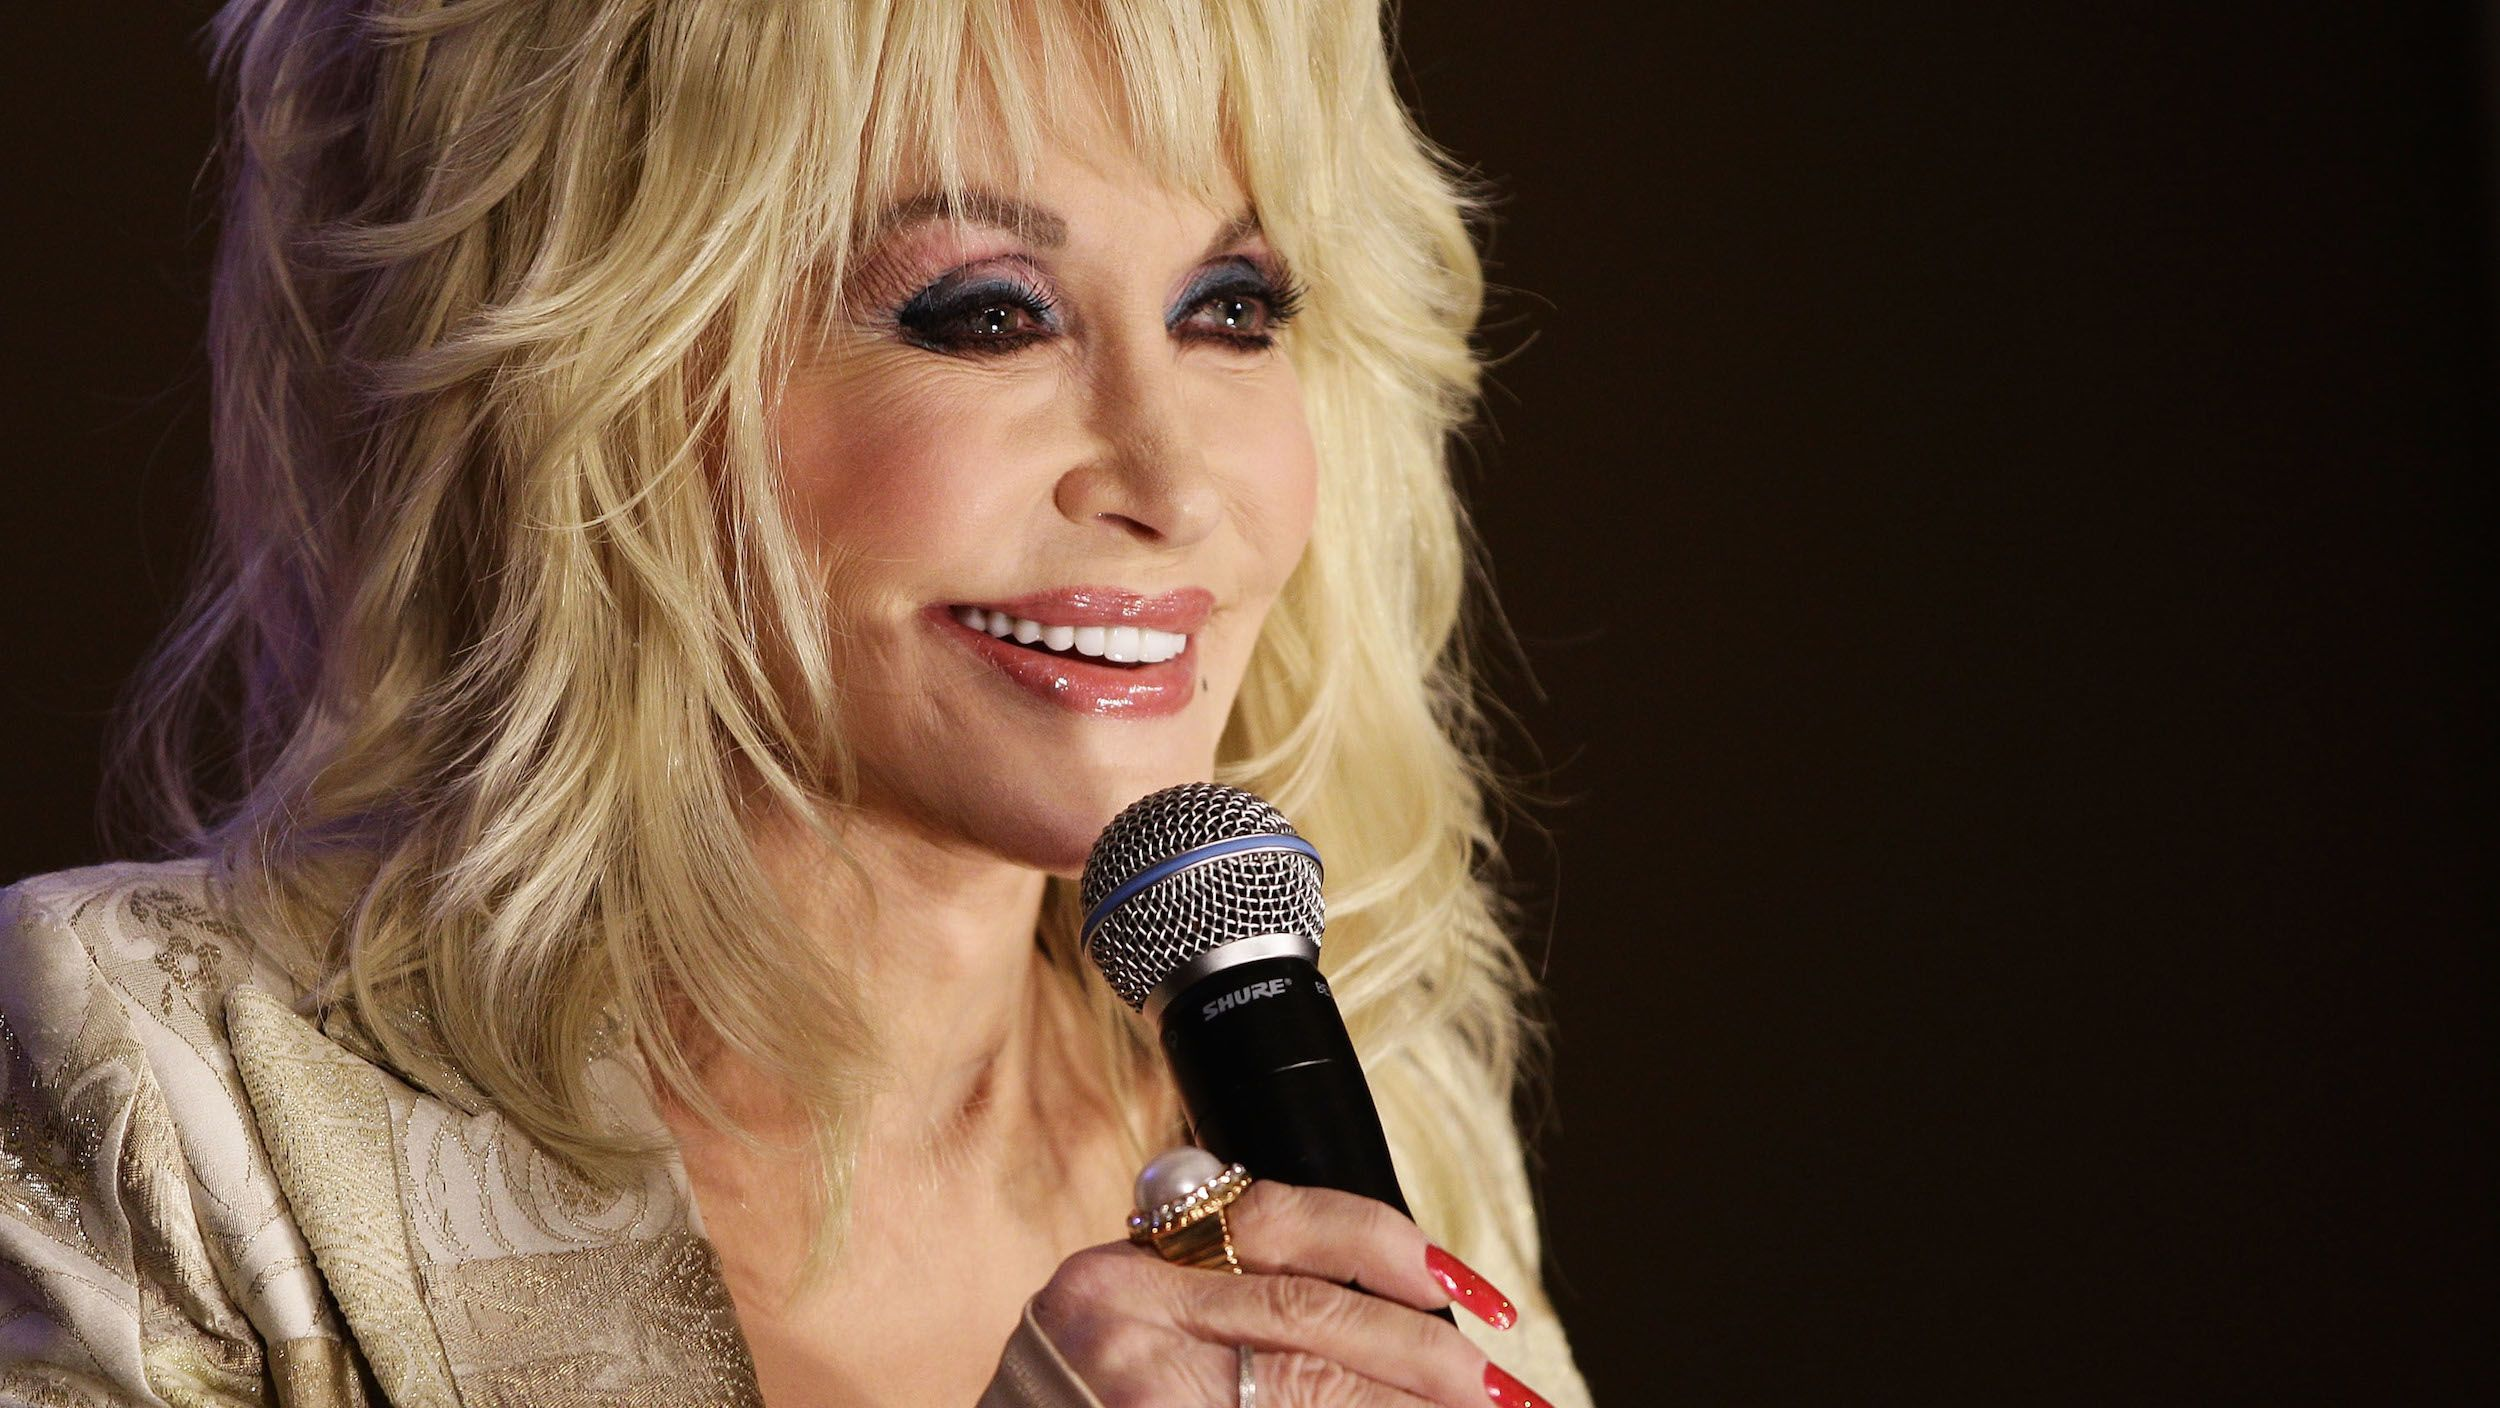 Facts About Dolly Parton